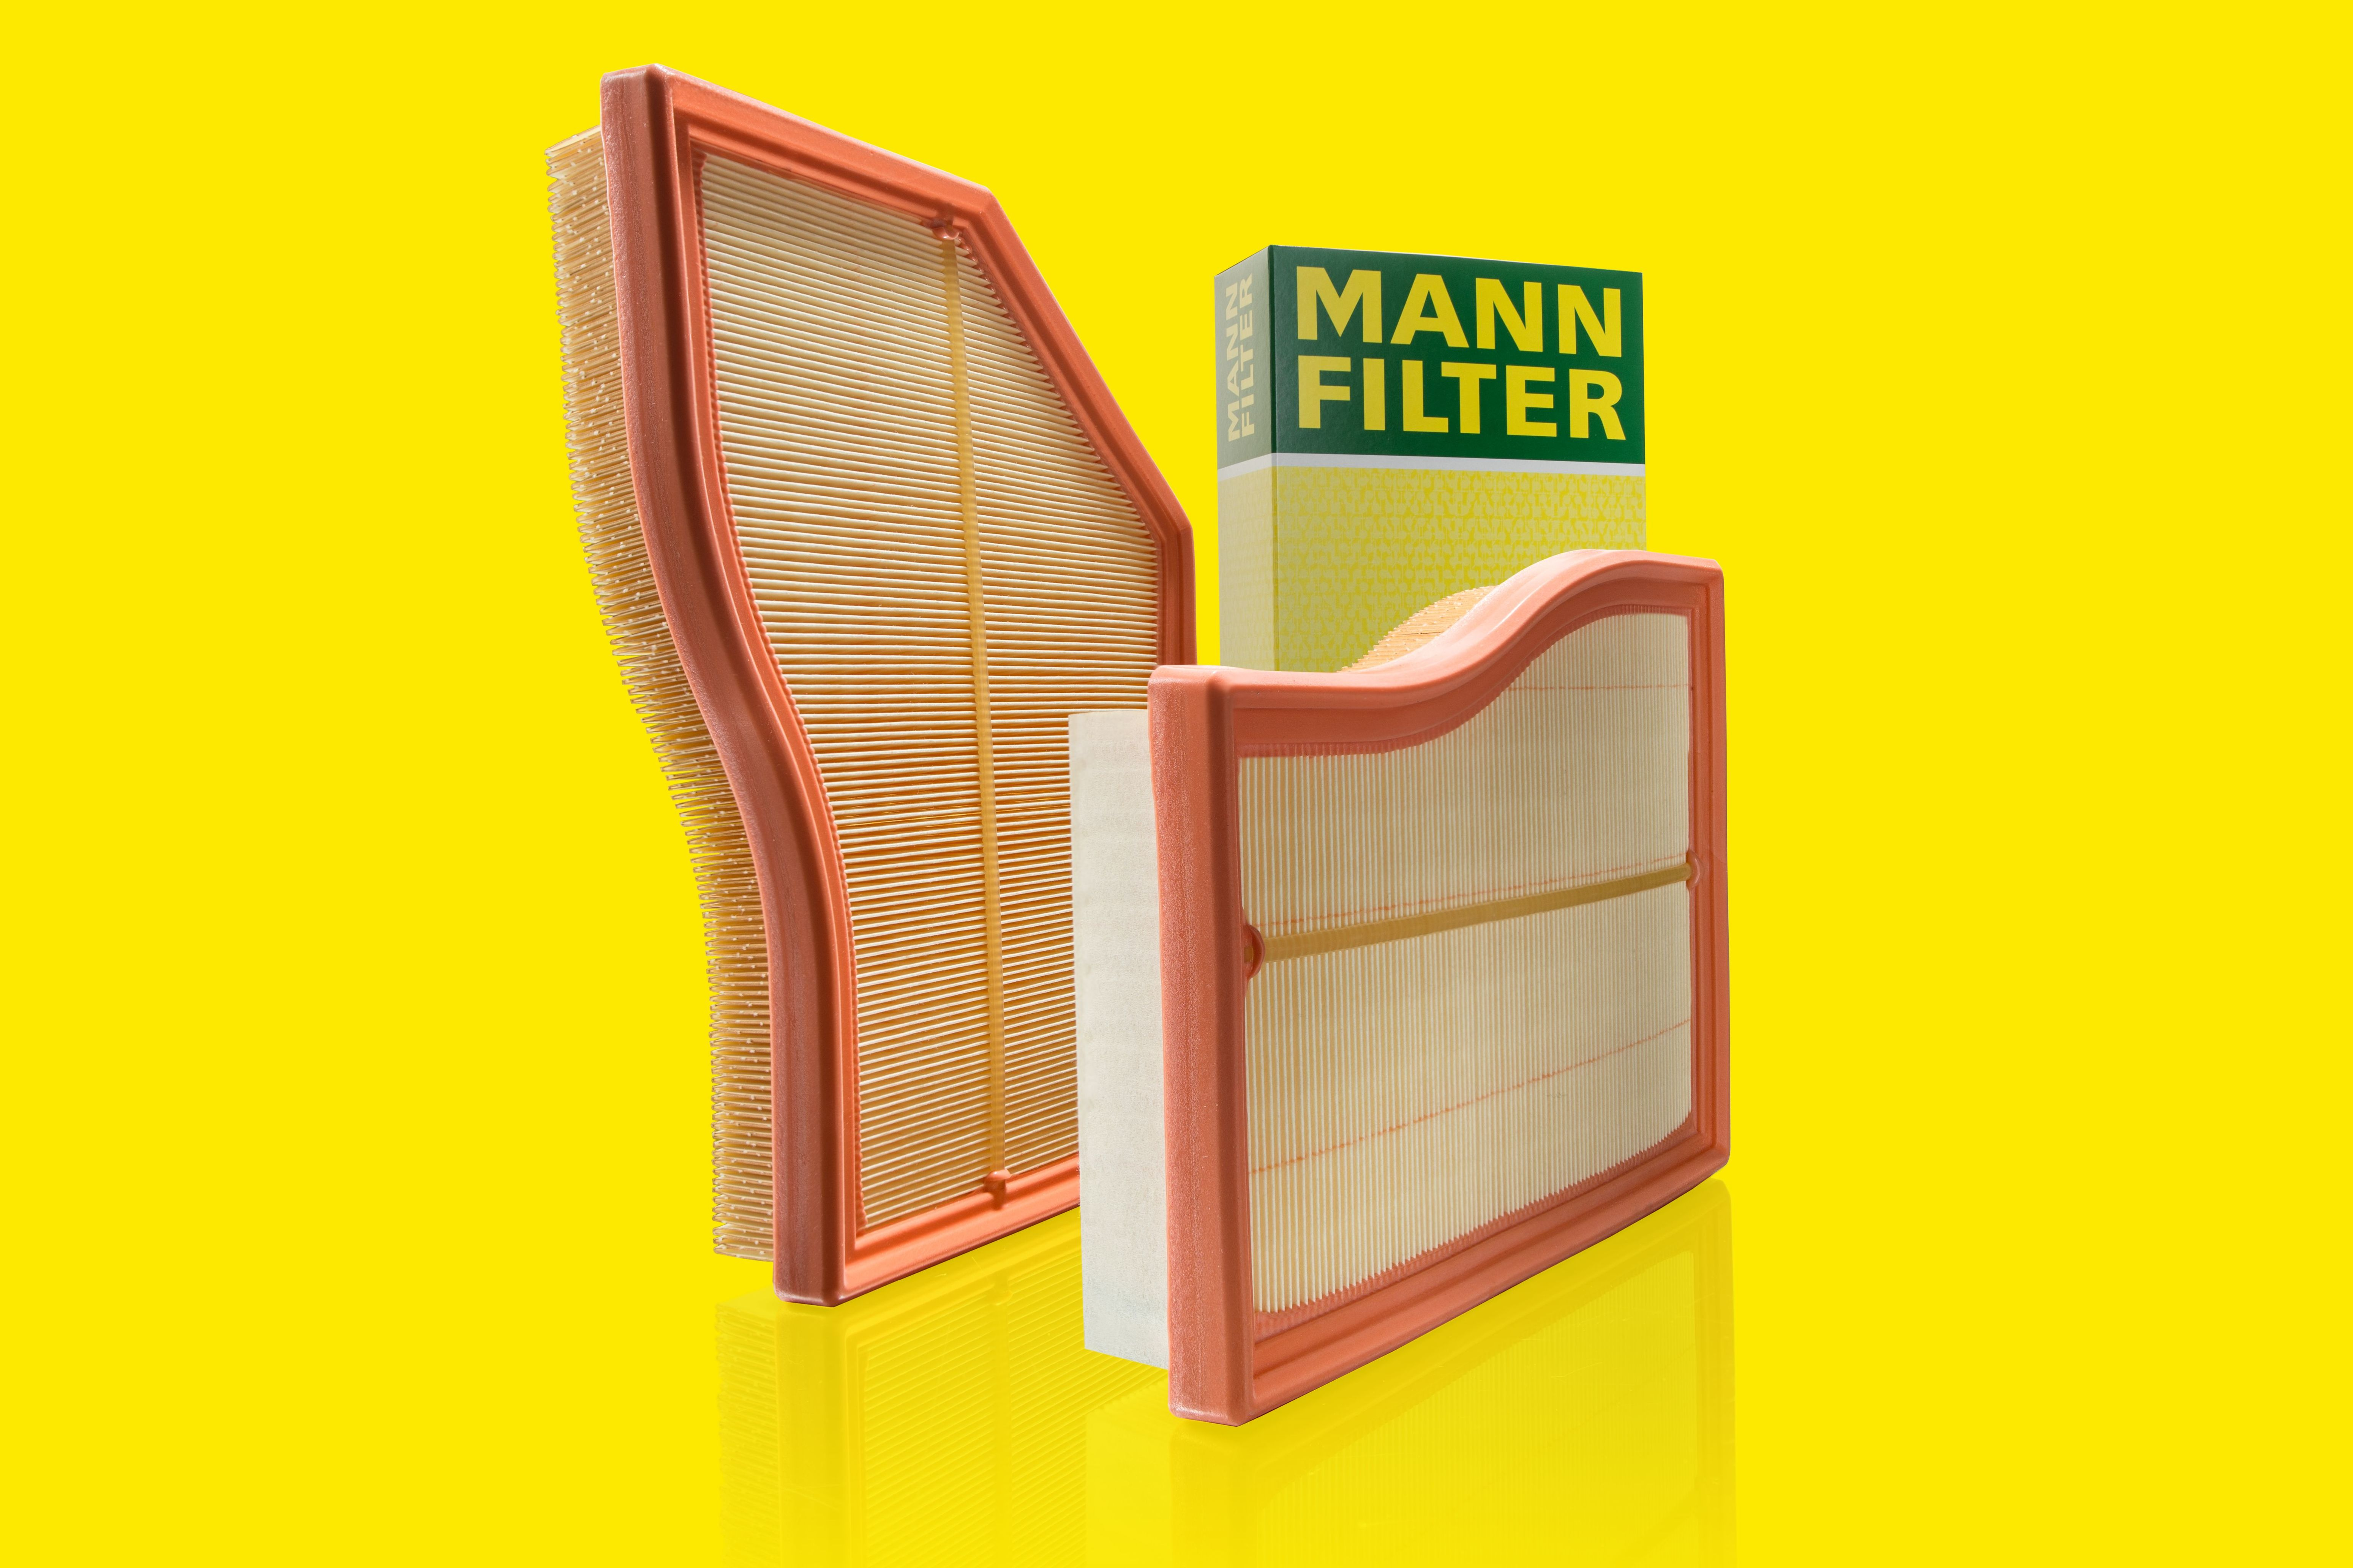 The new MANN-FILTER Flexline air filters C 26 017 and C 30 030